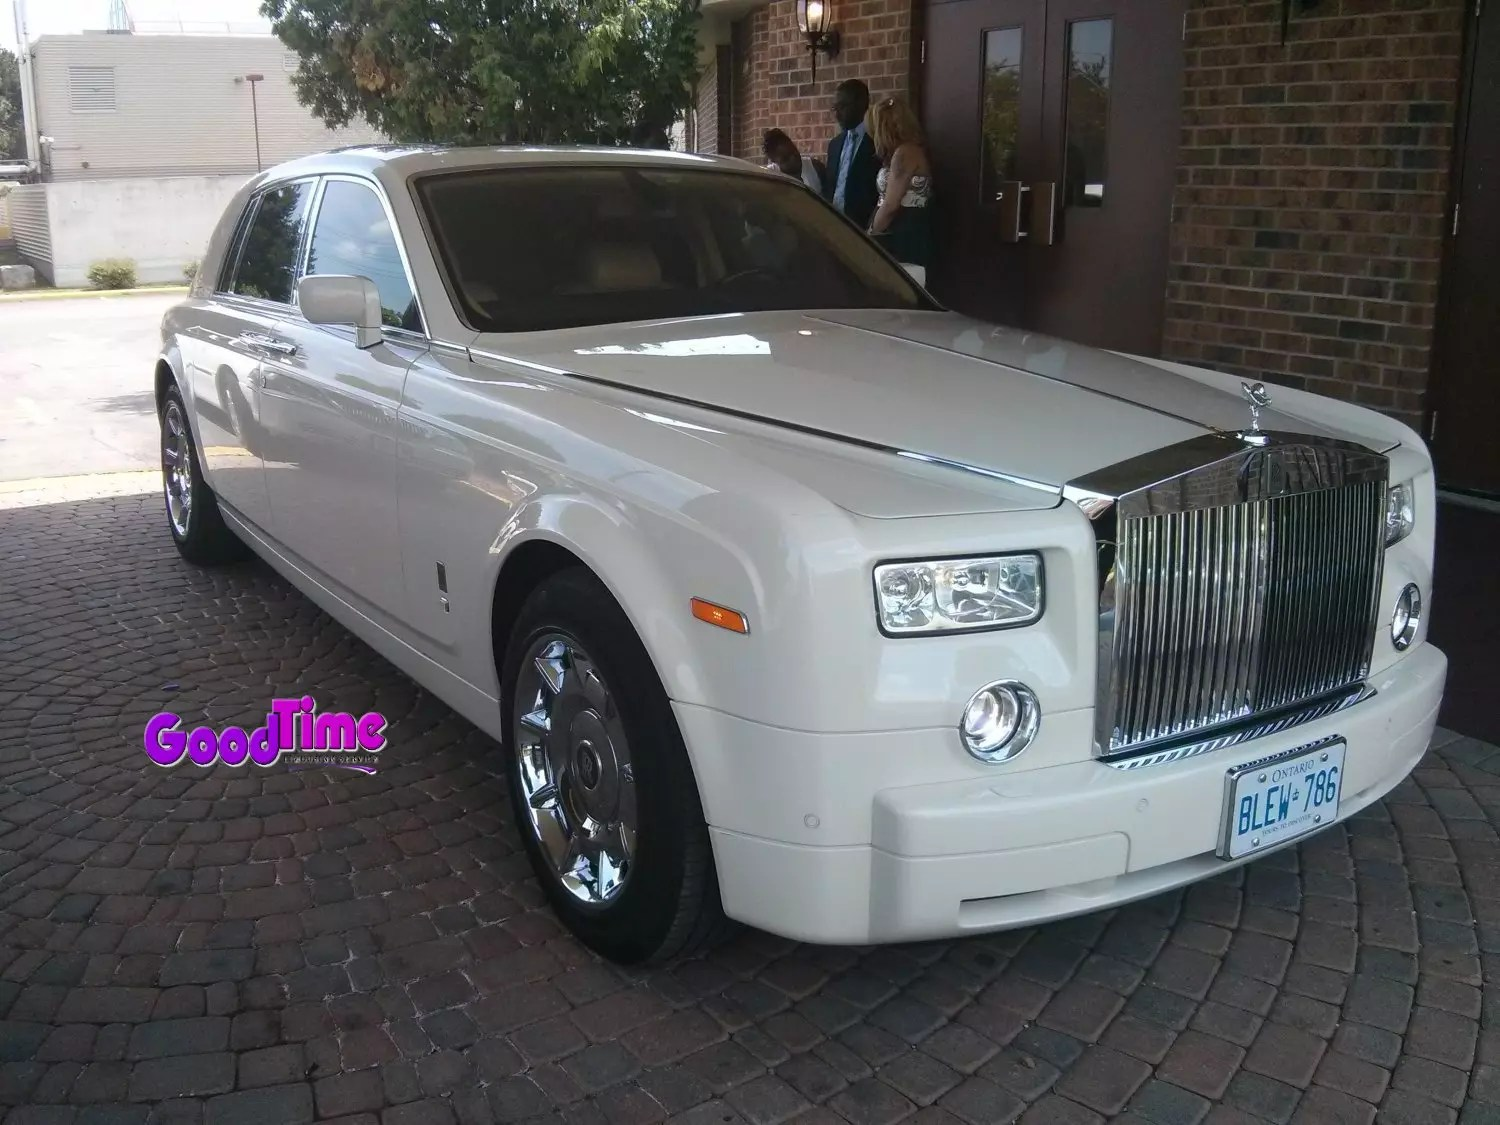 Rolls Royce Phantom White Limo Ext 1 1 LIMO RENTAL FLEET